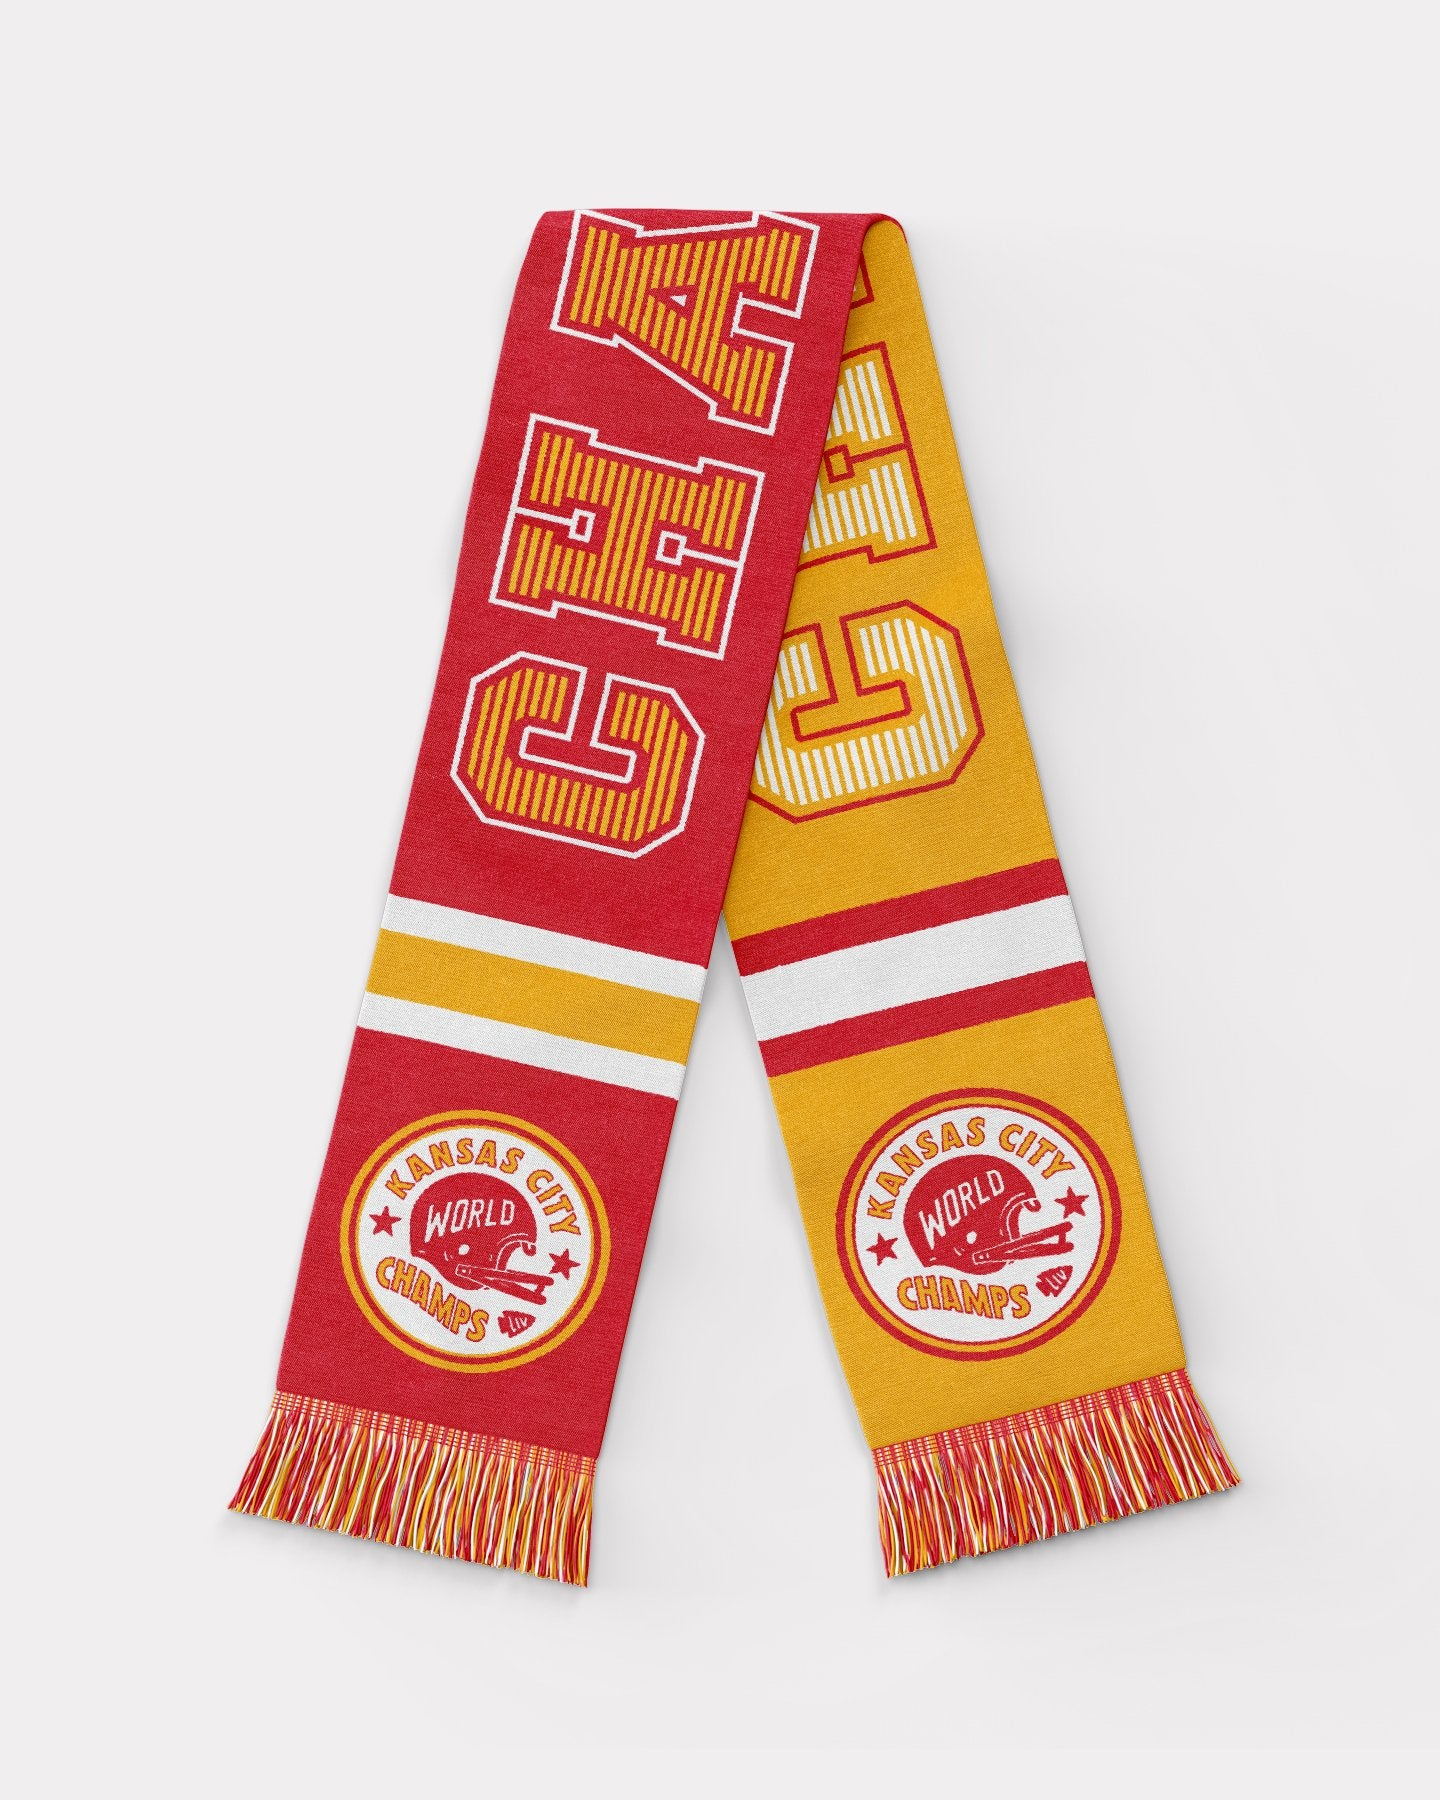 Kansas City World Champs Red & Gold Vintage Arrowhead Scarf